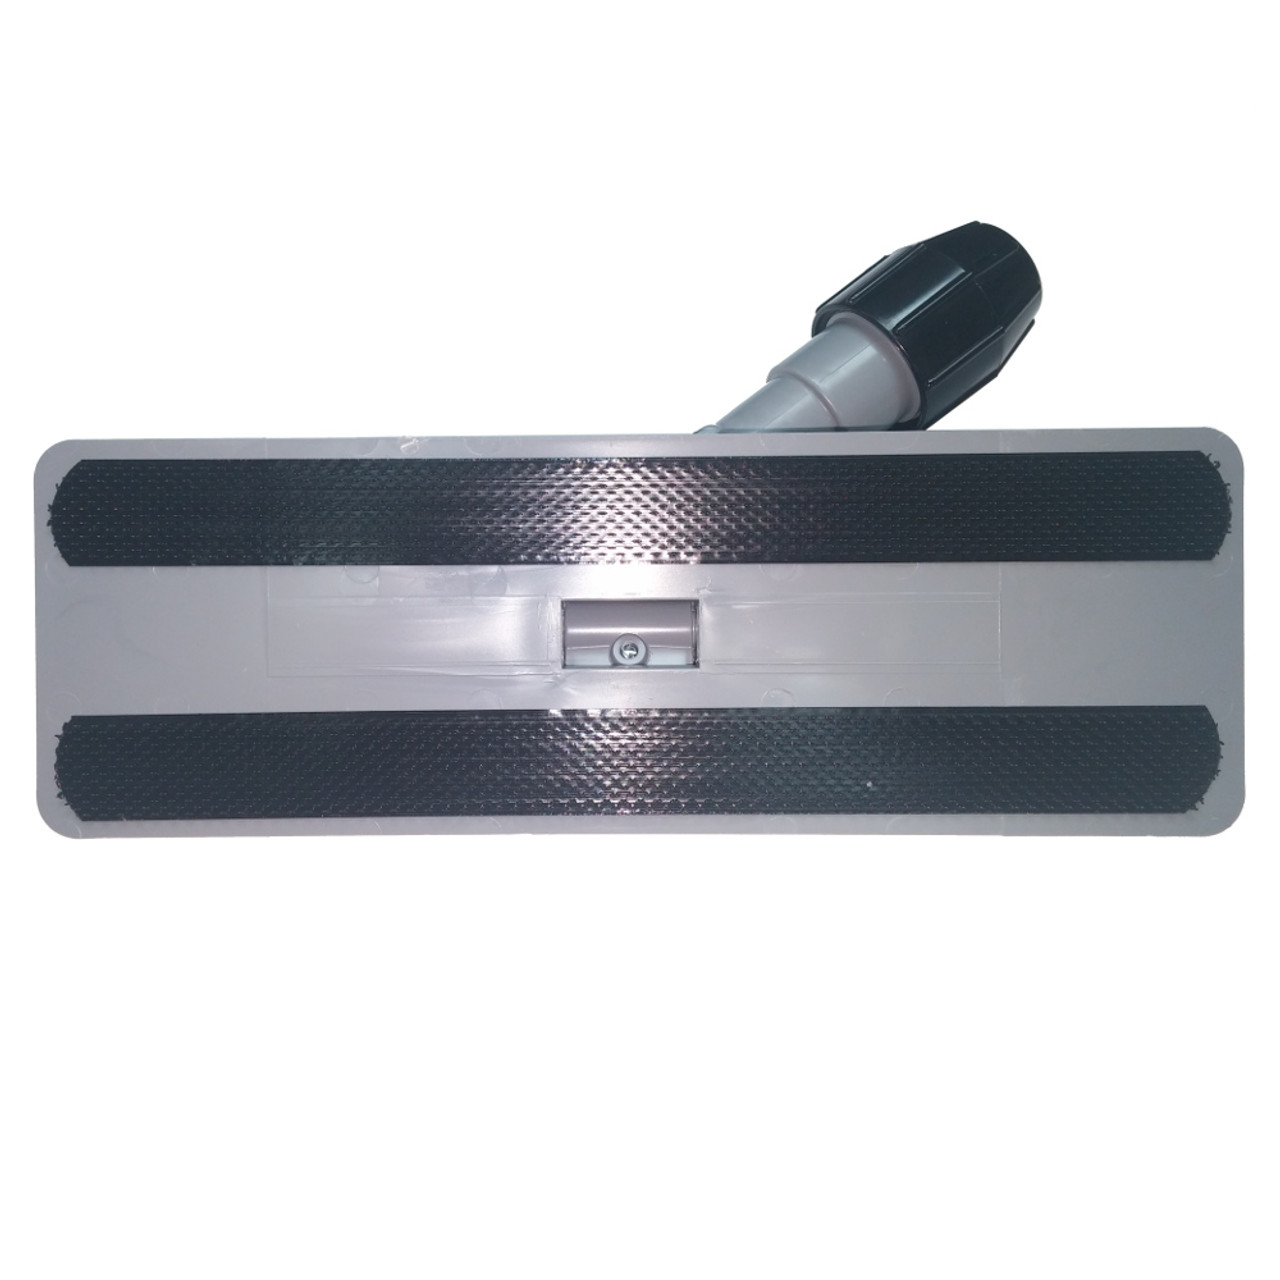 Pad holder features two strong velcro strips to hold pad securely.